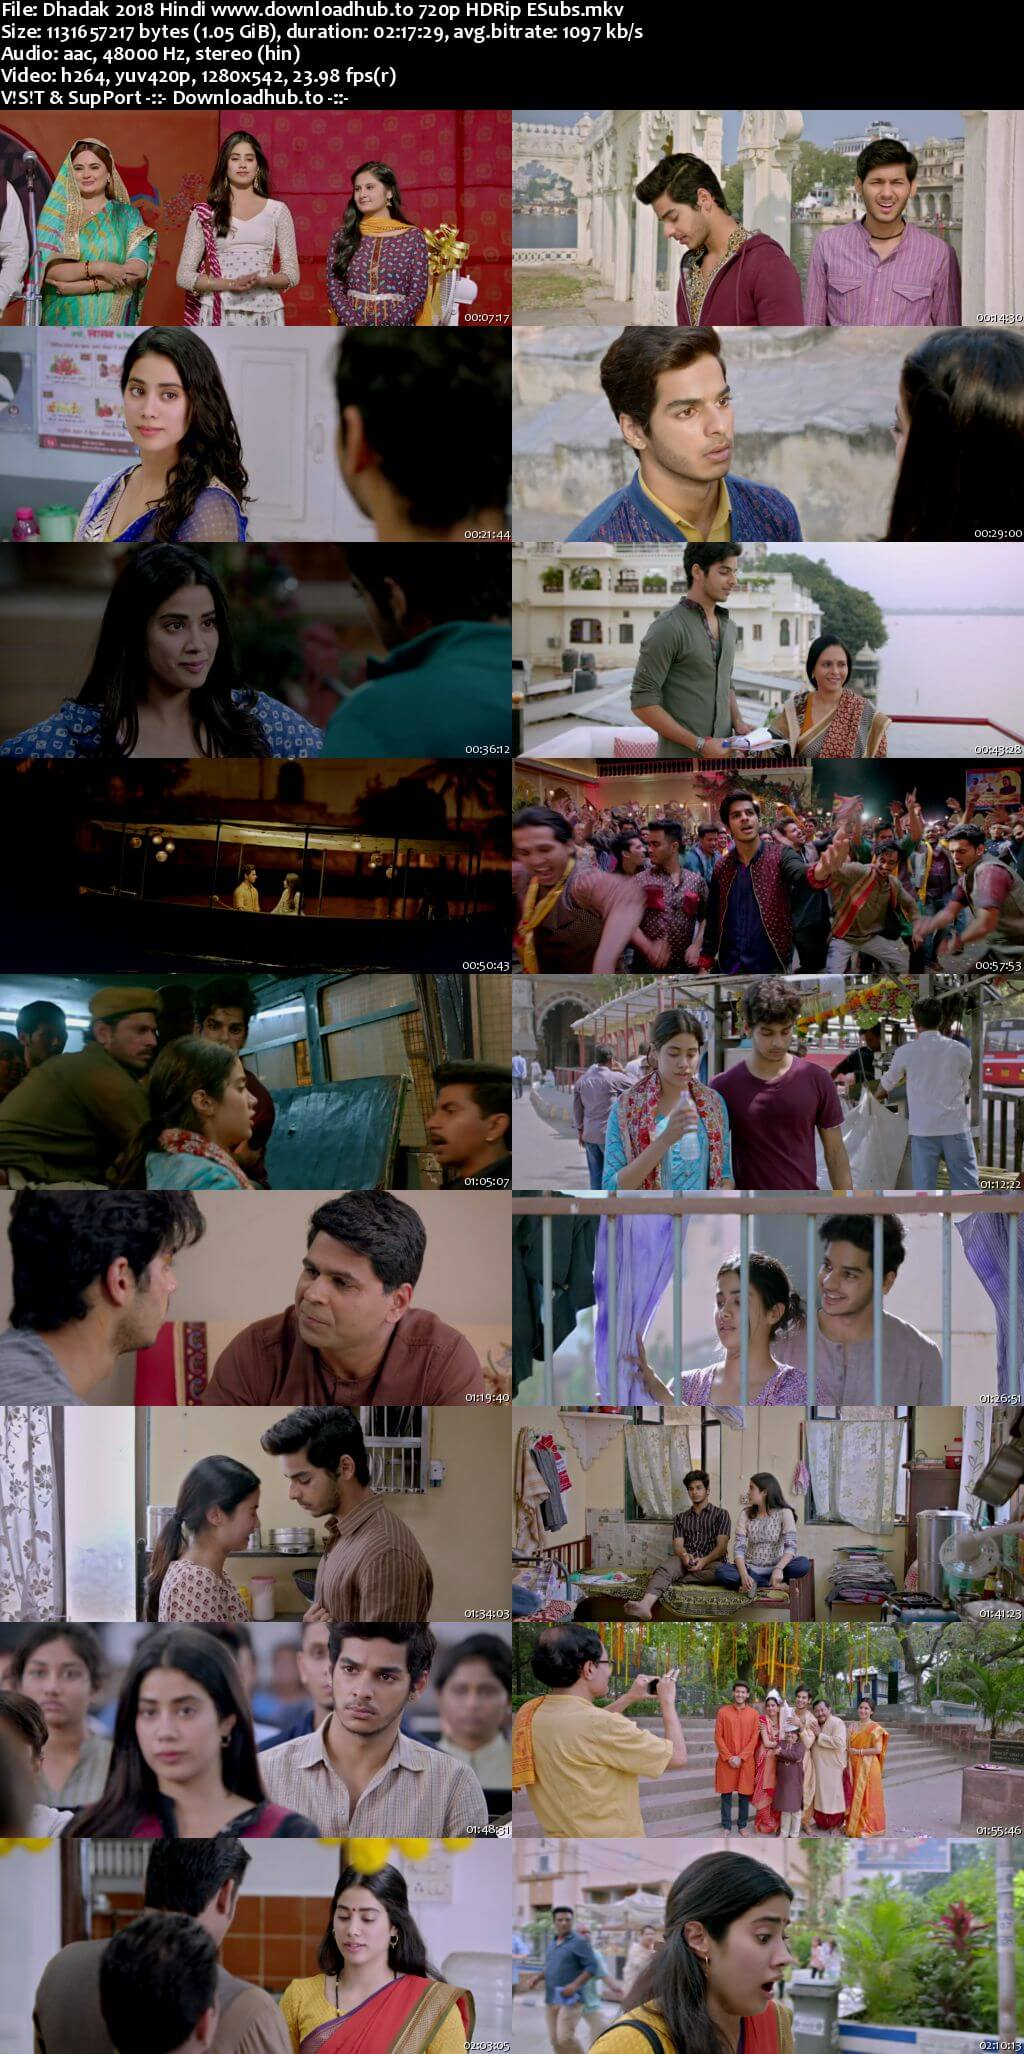 Dhadak 2018 Hindi 720p HDRip ESubs